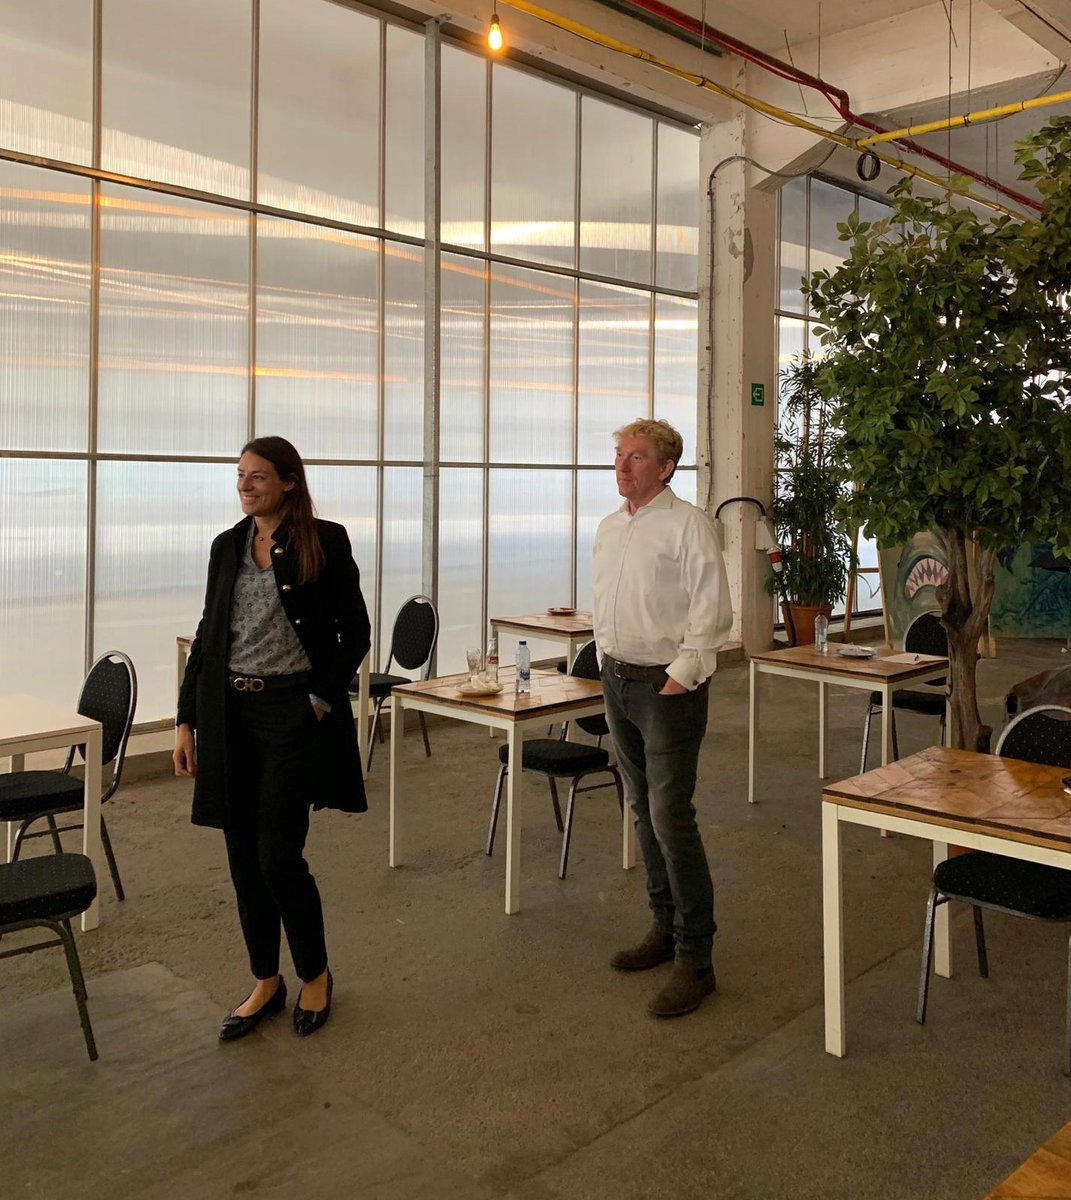 """Thanks to @CSquare_comm our team learned new valuable tips and tricks from @FMuls en @JanVdCruysse this afternoon during the training session """"how to pitch a journalist"""" #communication #training https://t.co/JS1bj5zKad"""